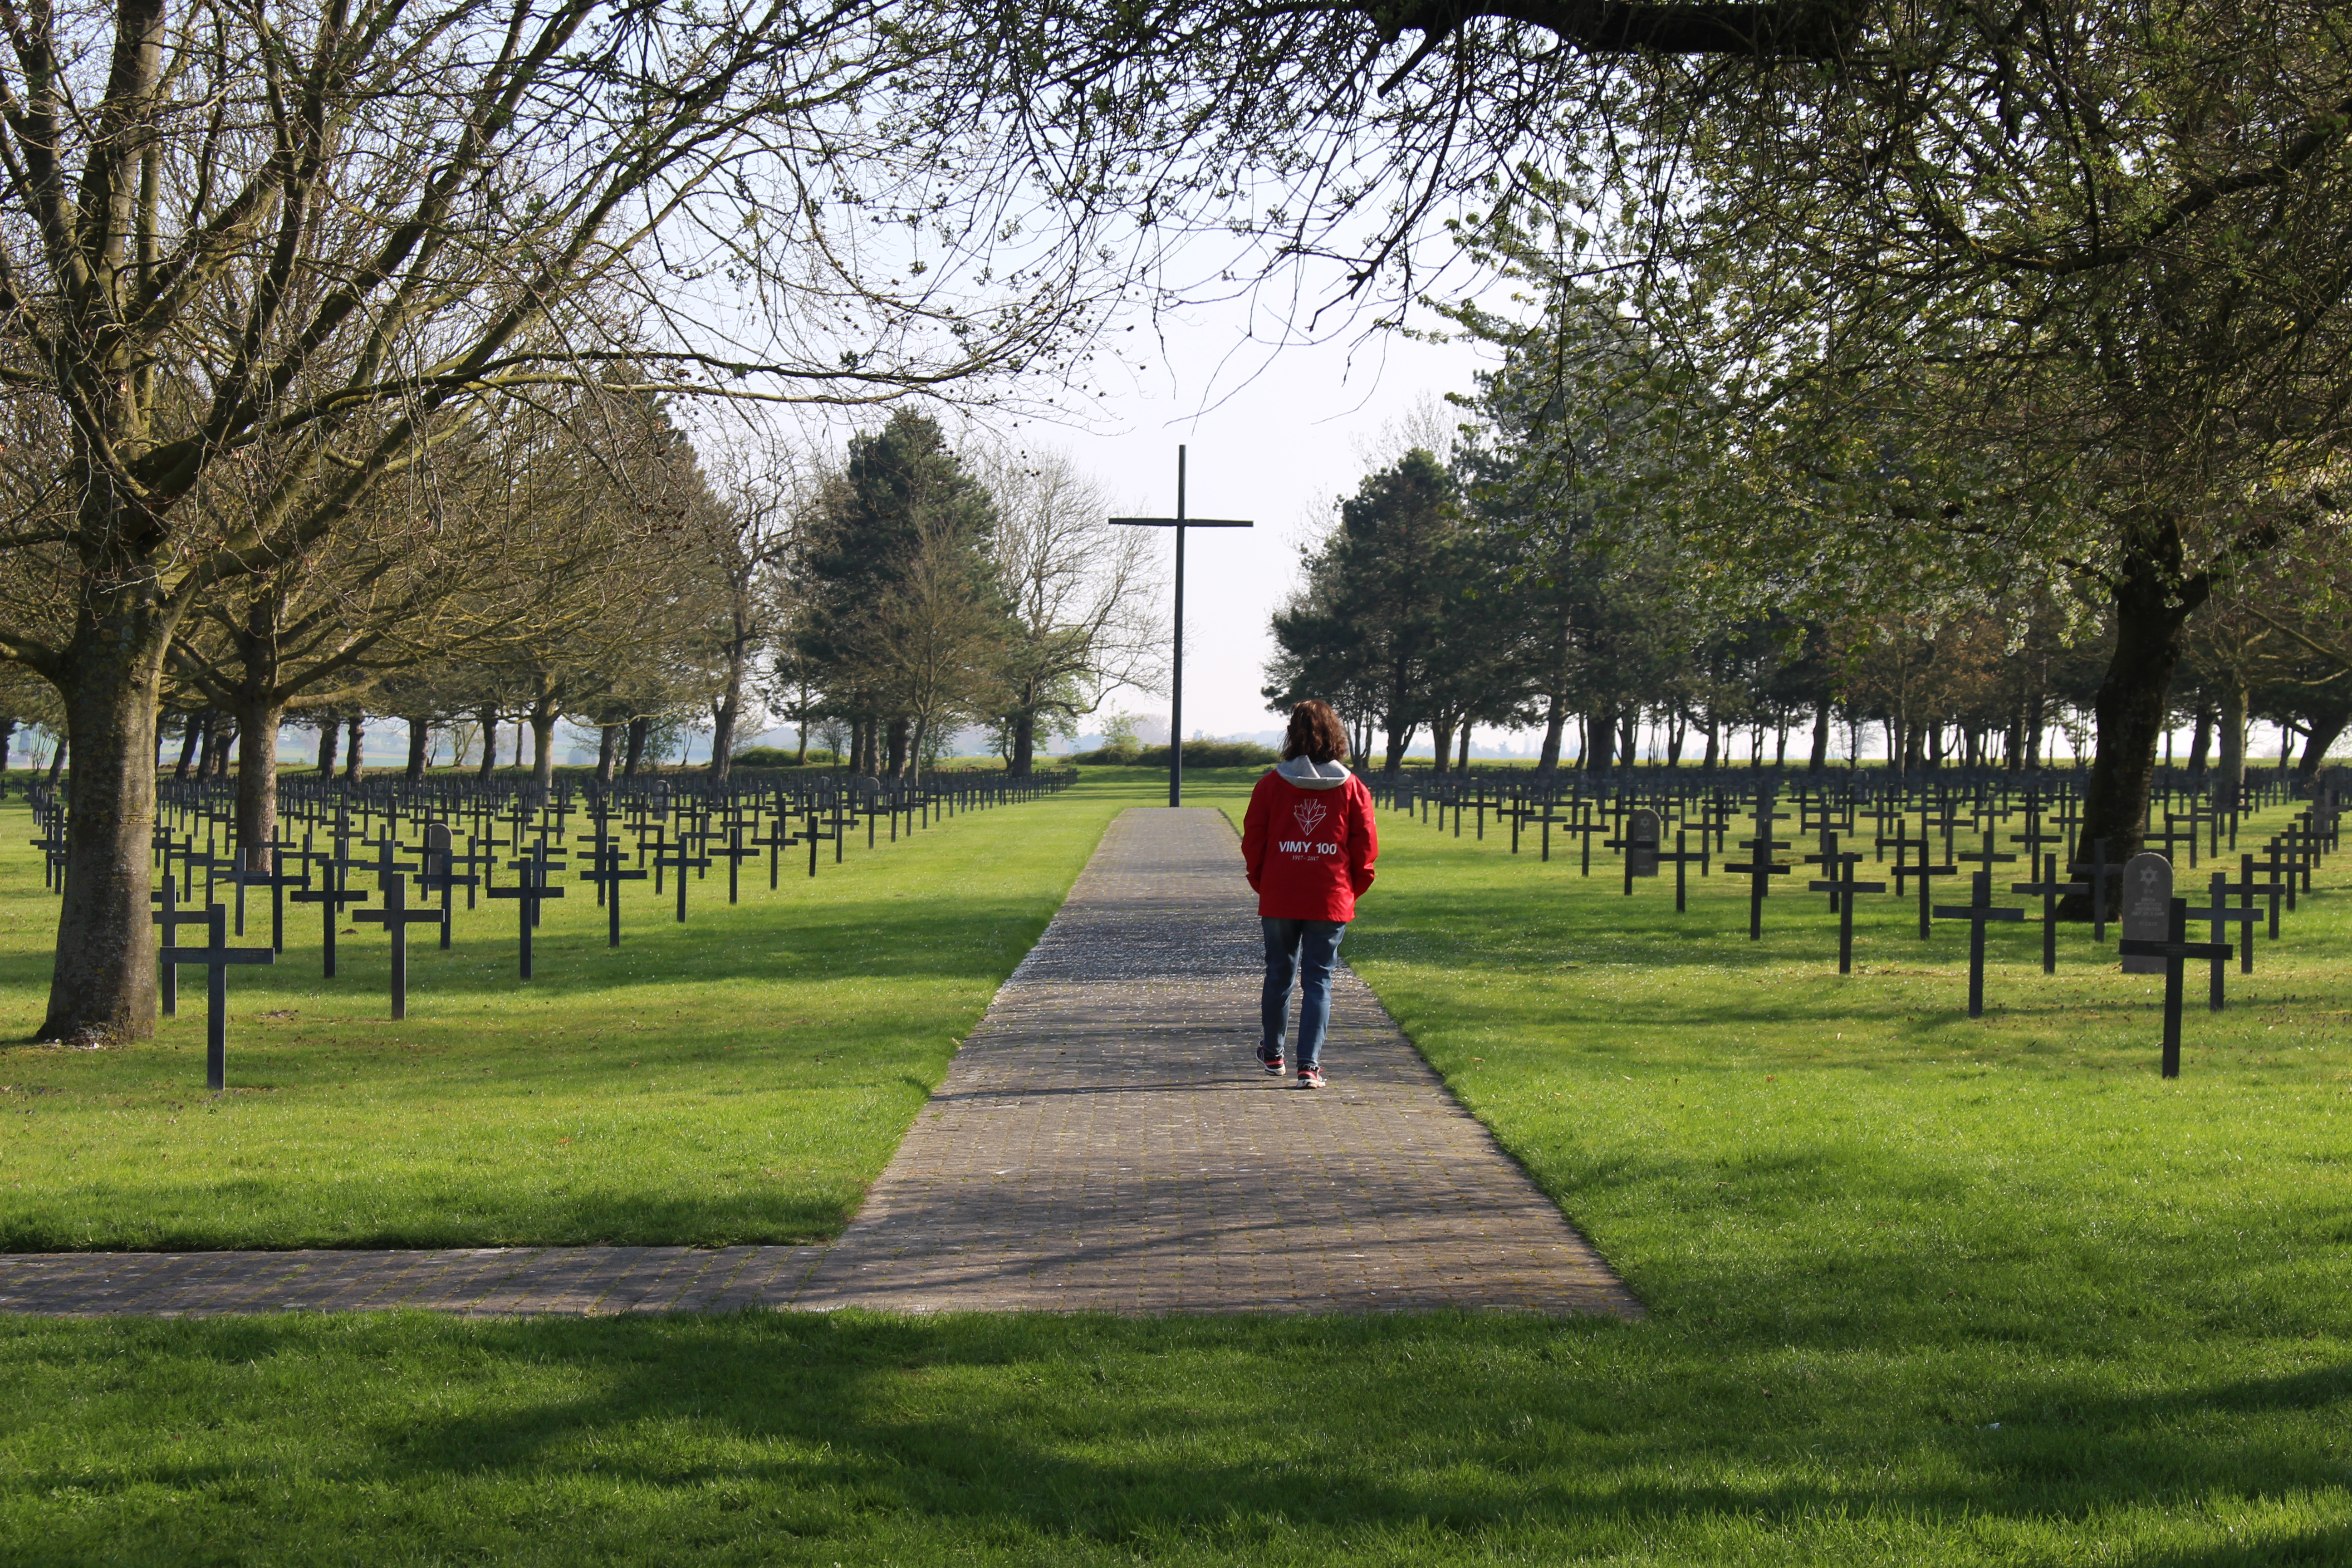 Path with woman walking down it to a tall black cross. Approximately 200 crosses surrounding.